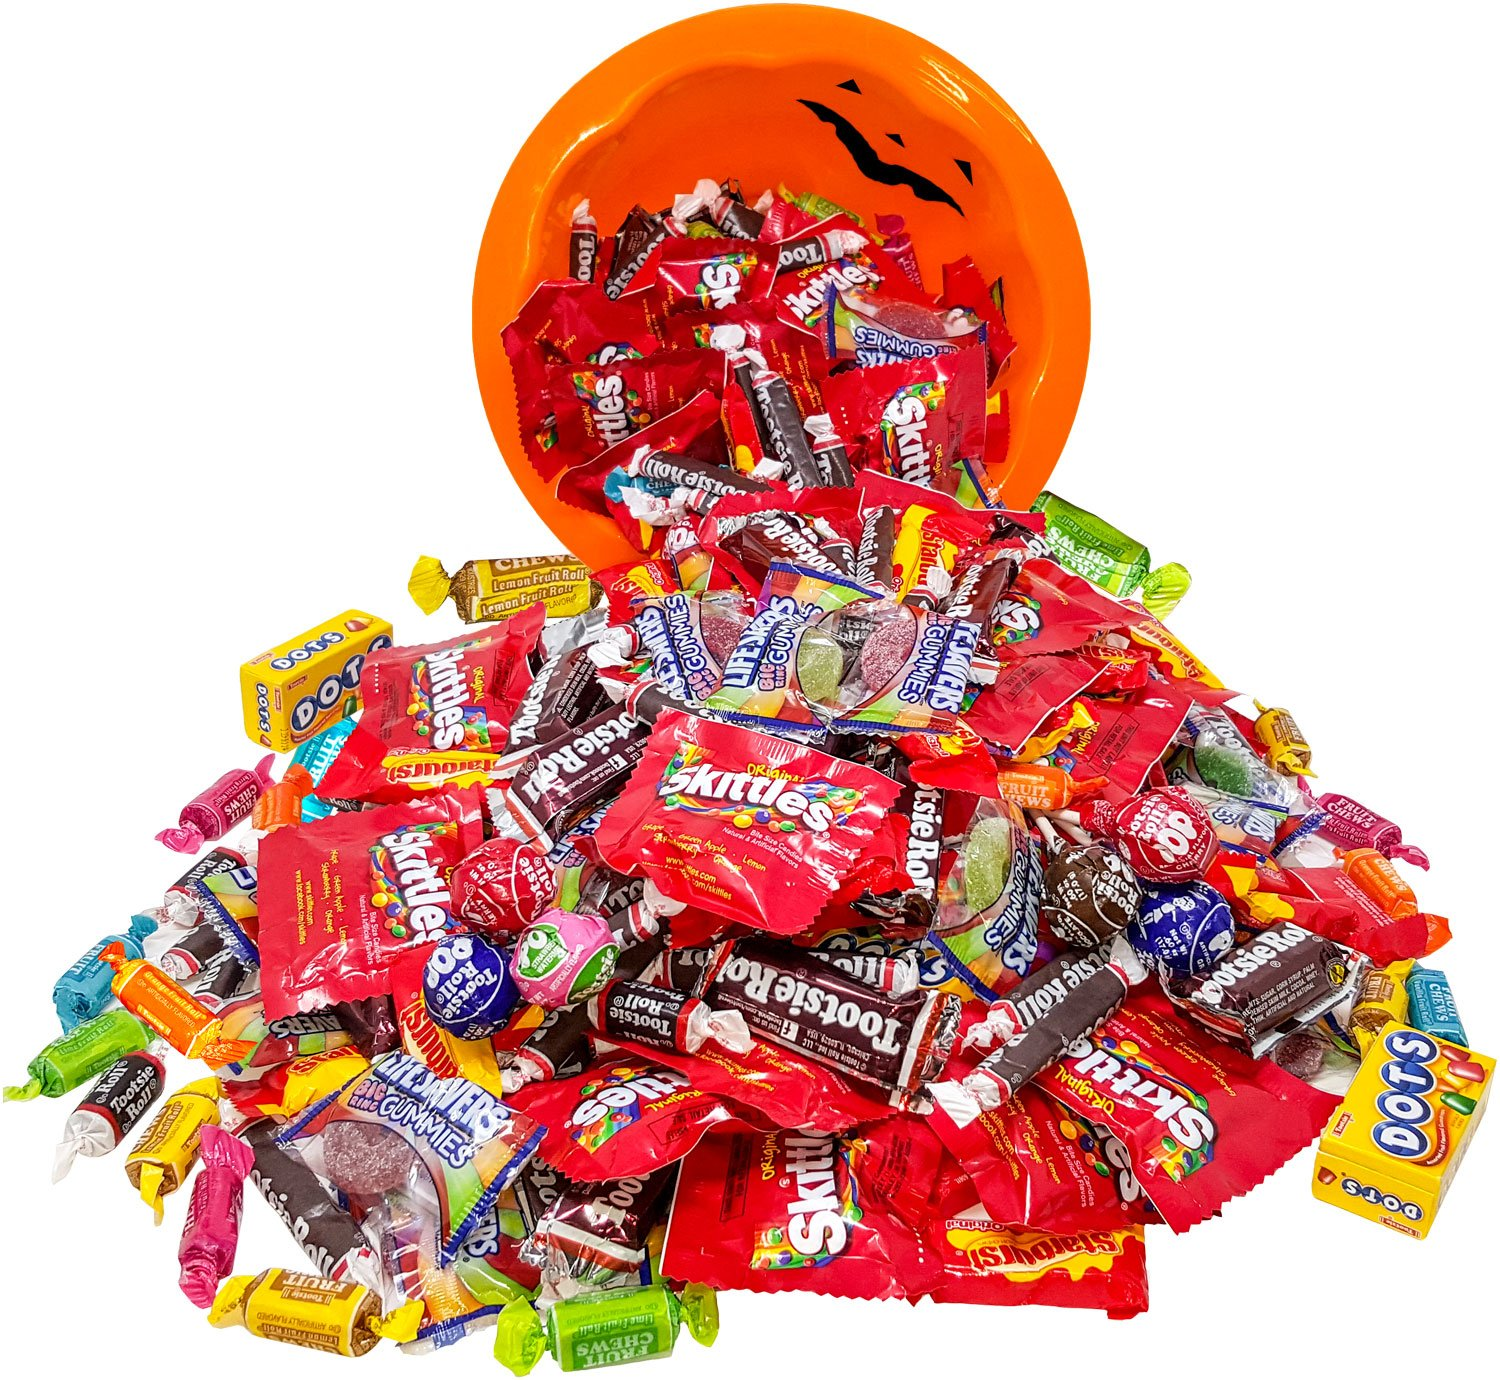 Assorted American Candy Classics Over 13 Favorite Flavors 11 Lb Variety Bulk Value Pack Skittles Tootsies Starburst Lifesavers Gummies And More (176 oz) by Assortit (Image #7)